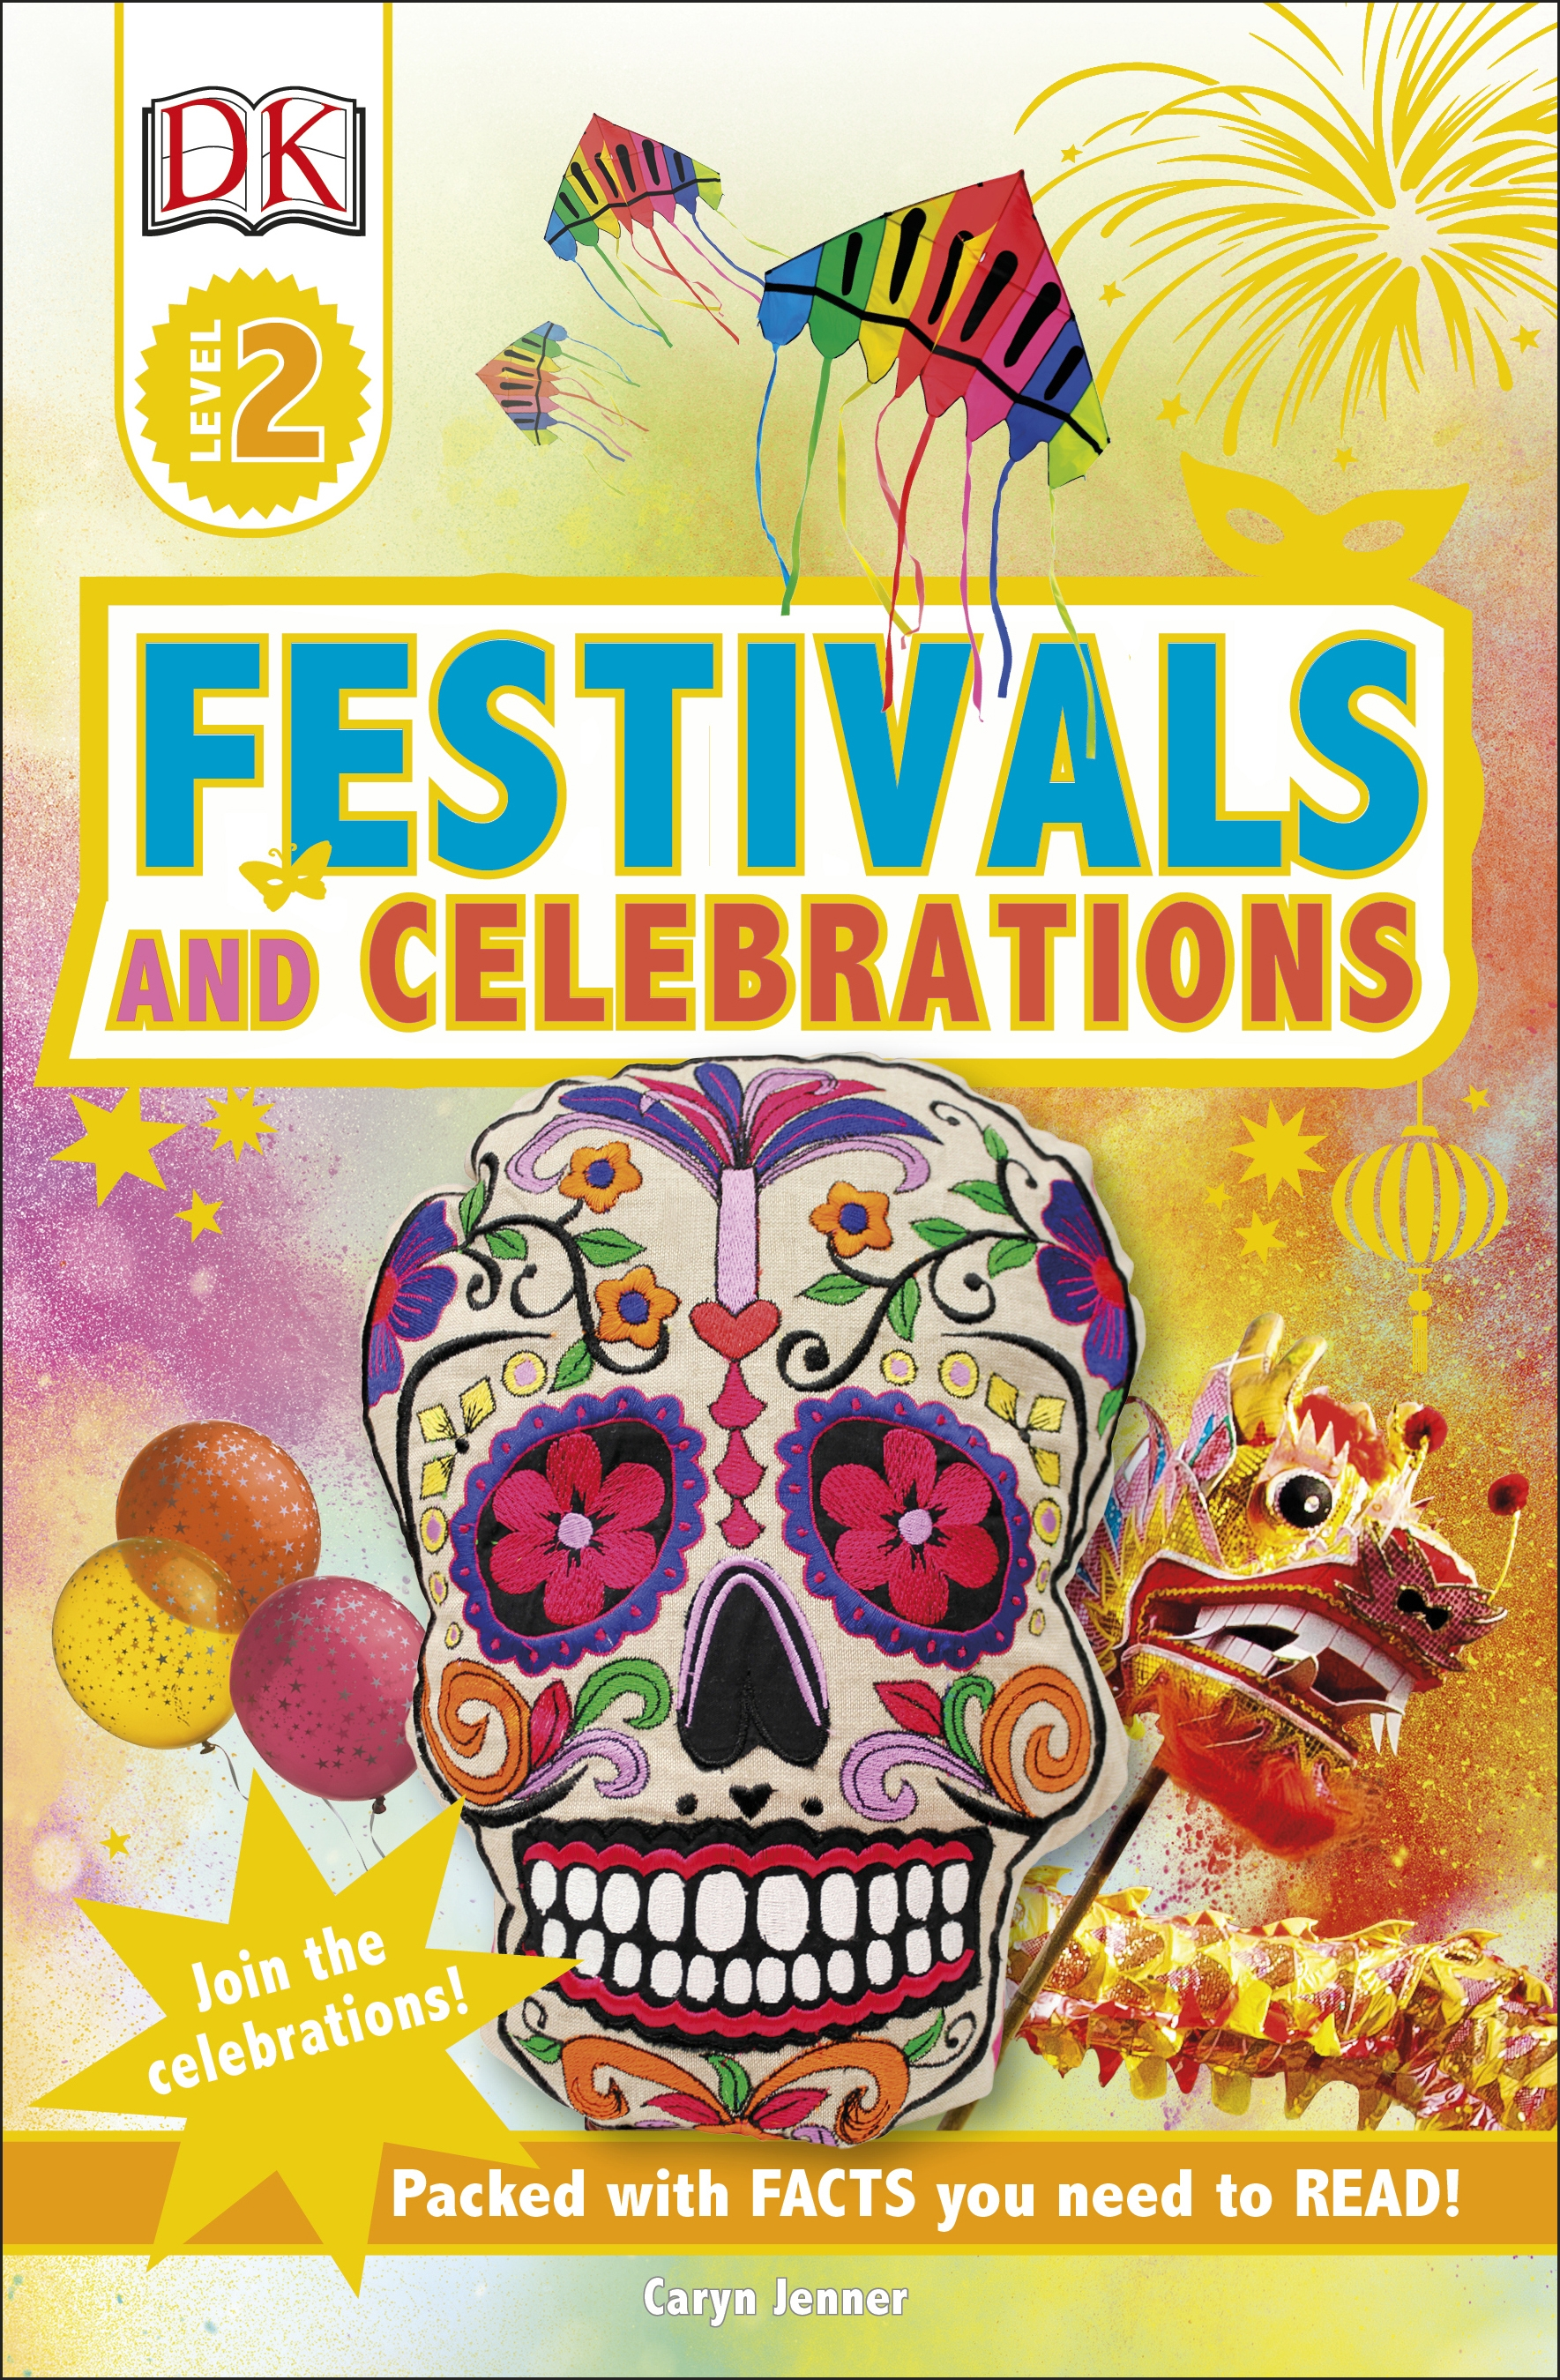 Cover Image of DK Readers L2 Festivals and Celebrations